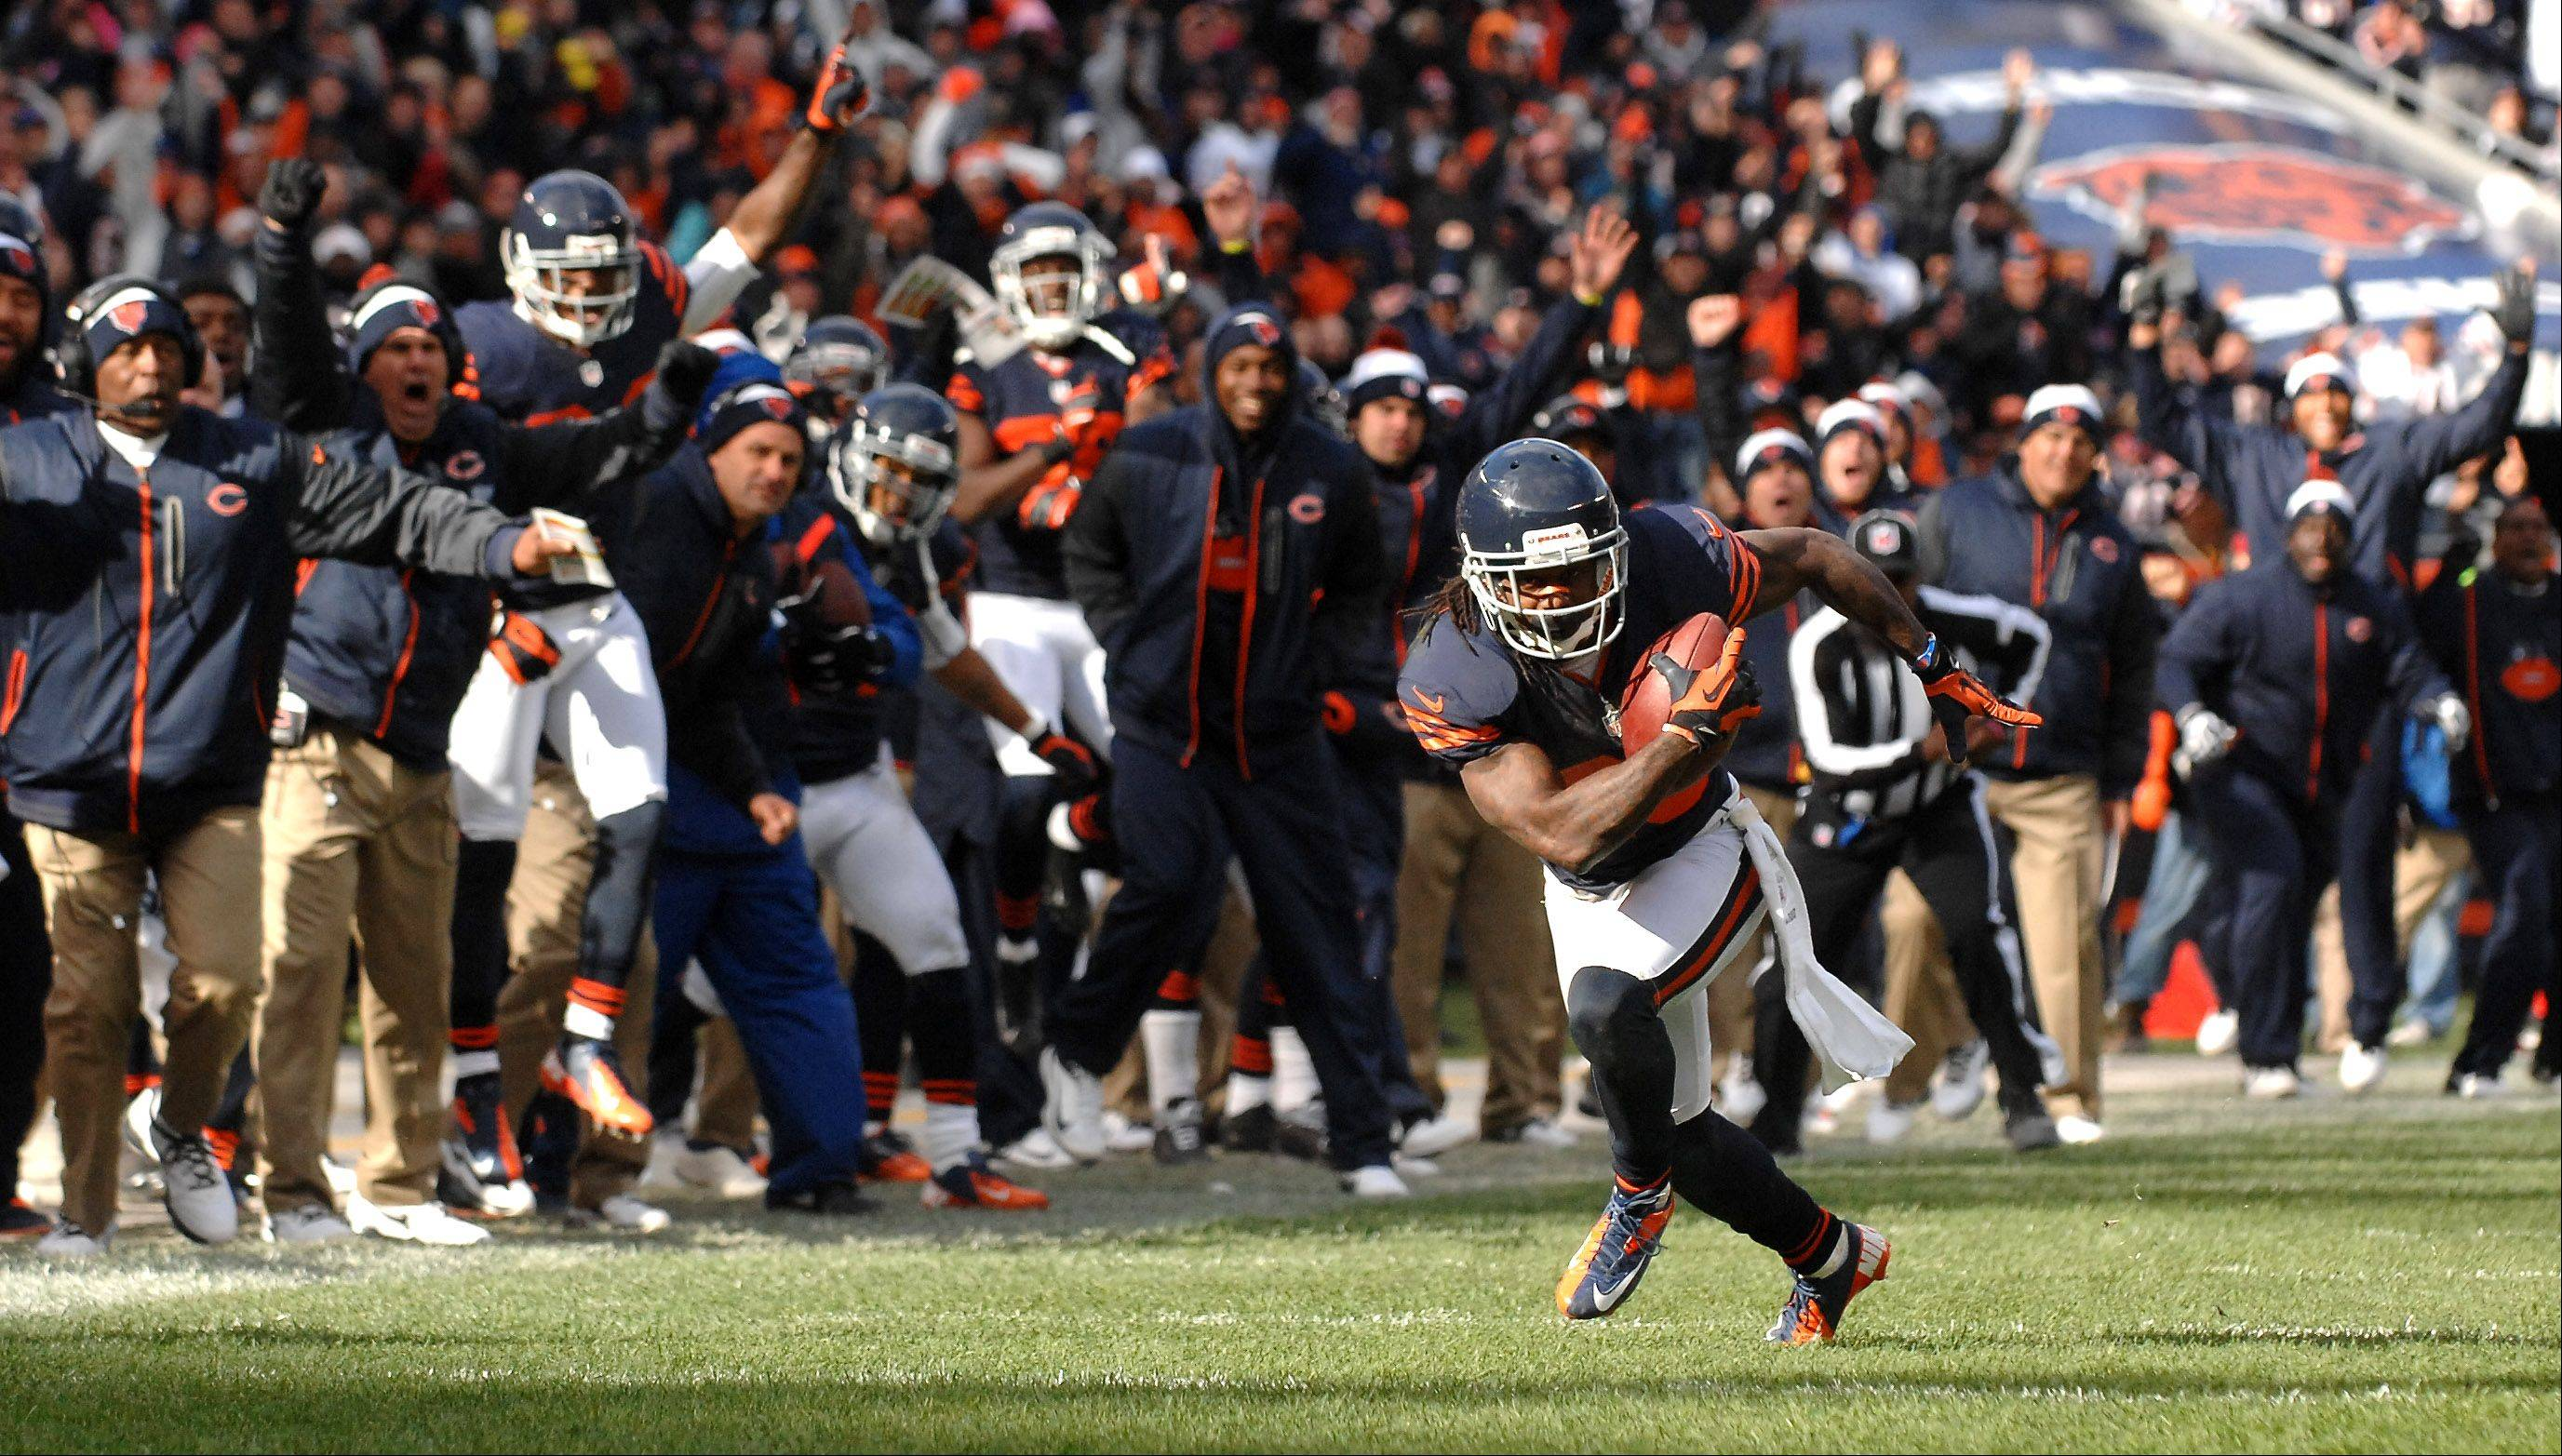 Rick West/rwest@dailyherald.com The Bears bench erupts as cornerback Tim Jennings returns an interception for a touchdown against Carolina last season. Even with the loss of three key players, Jennings believes the team's defense will still be a force to be reckoned with in 2013.